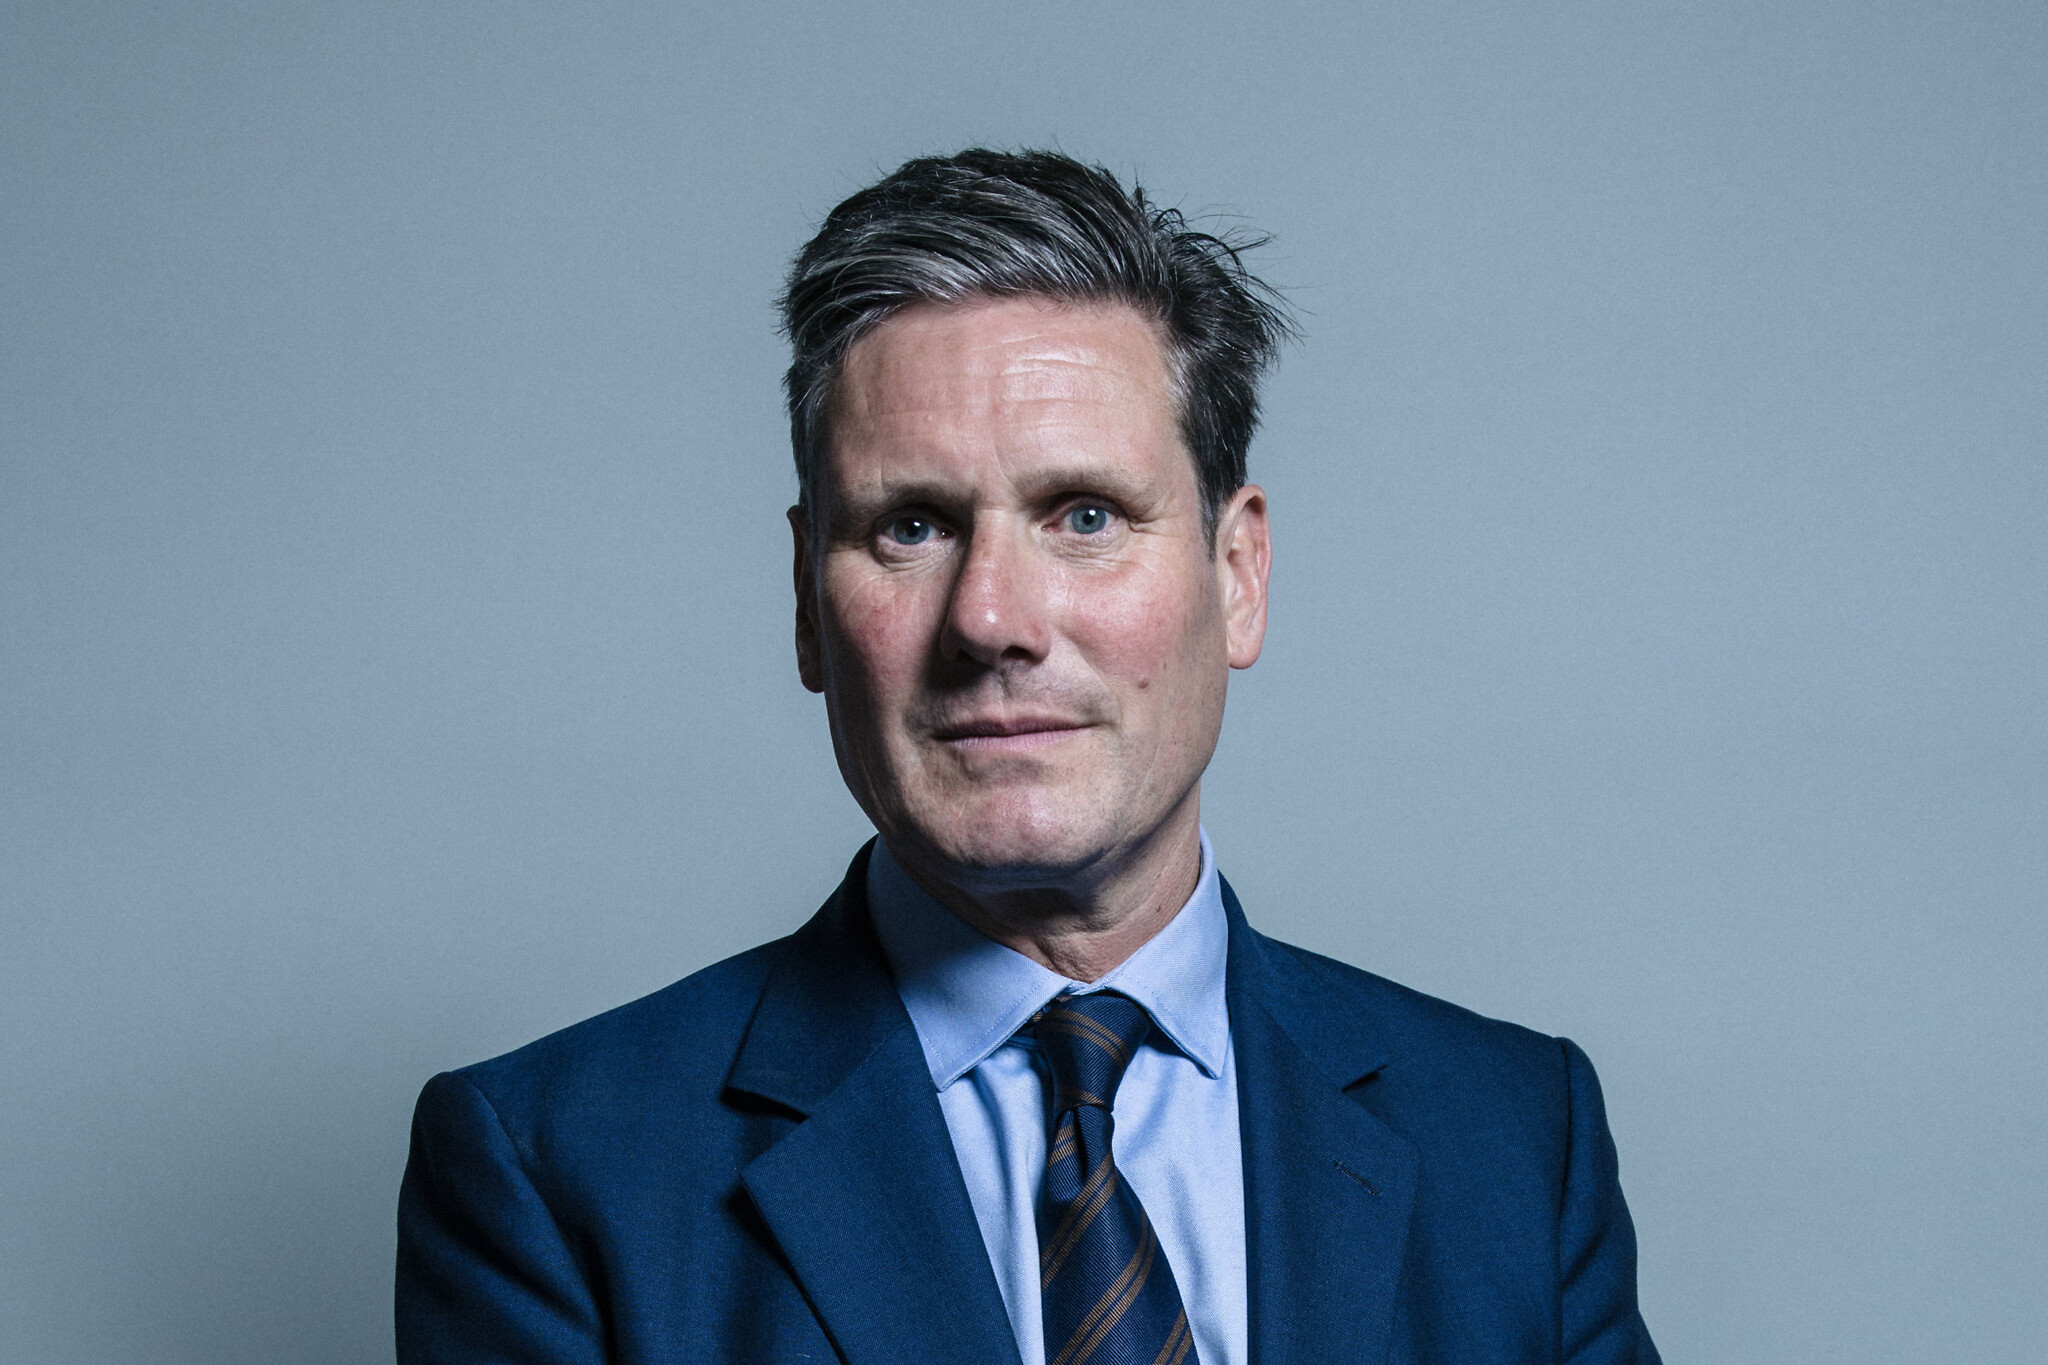 Sir Keir Starmer QC MP